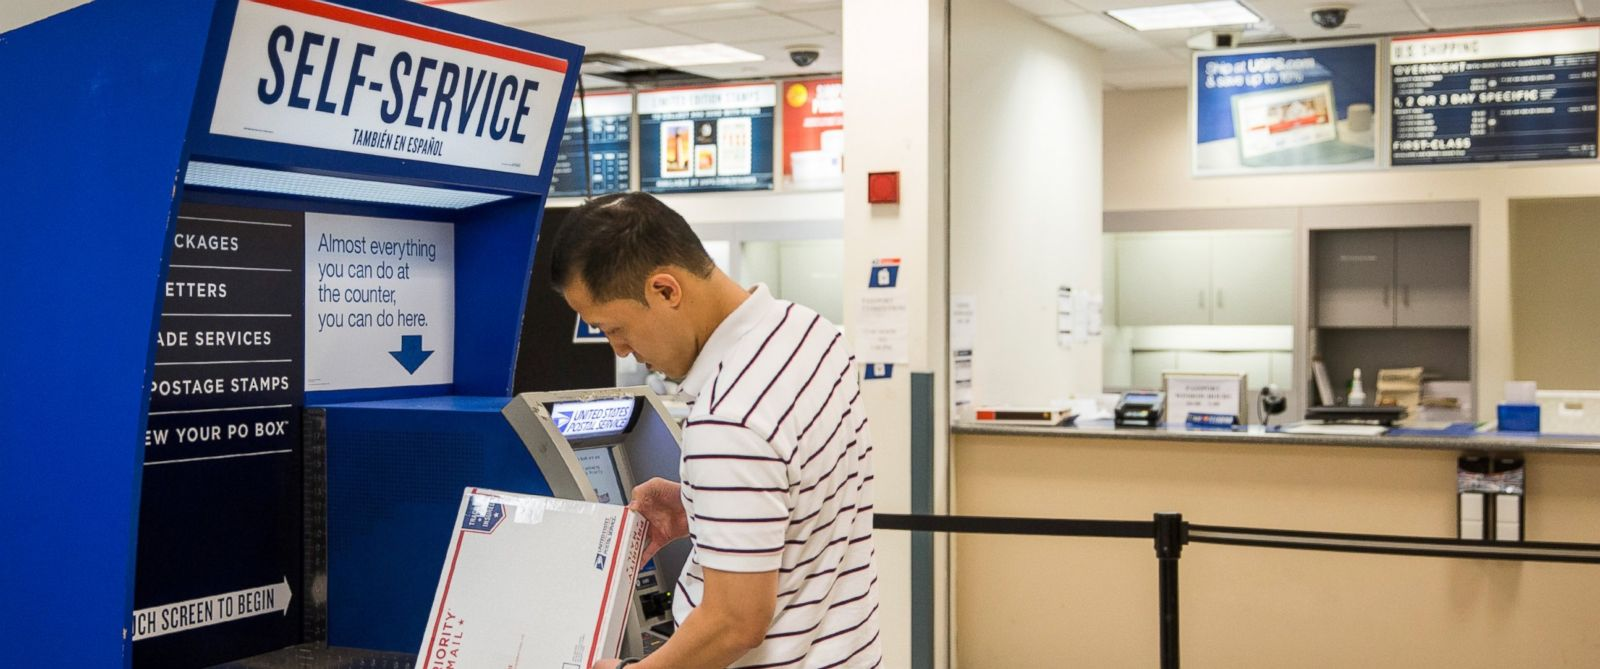 PHOTO: A man uses a self service machine at a United States Post Office (USPS) on Sept. 25, 2013 in New York City.